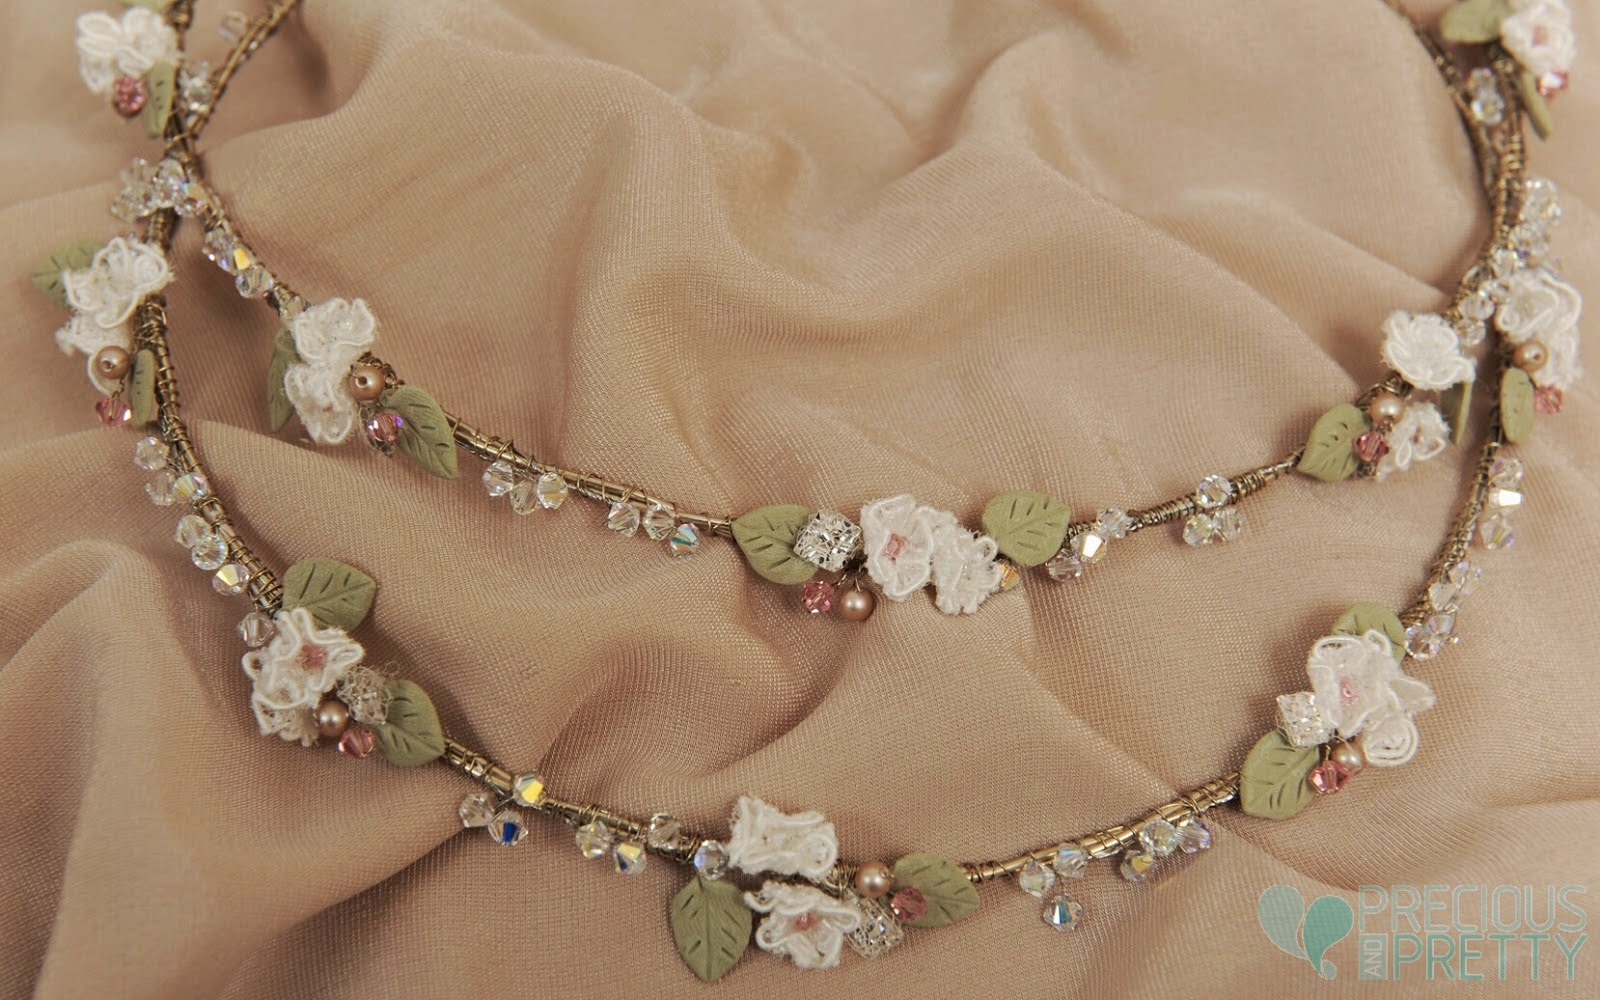 romantic stefana wedding crowns from Greece